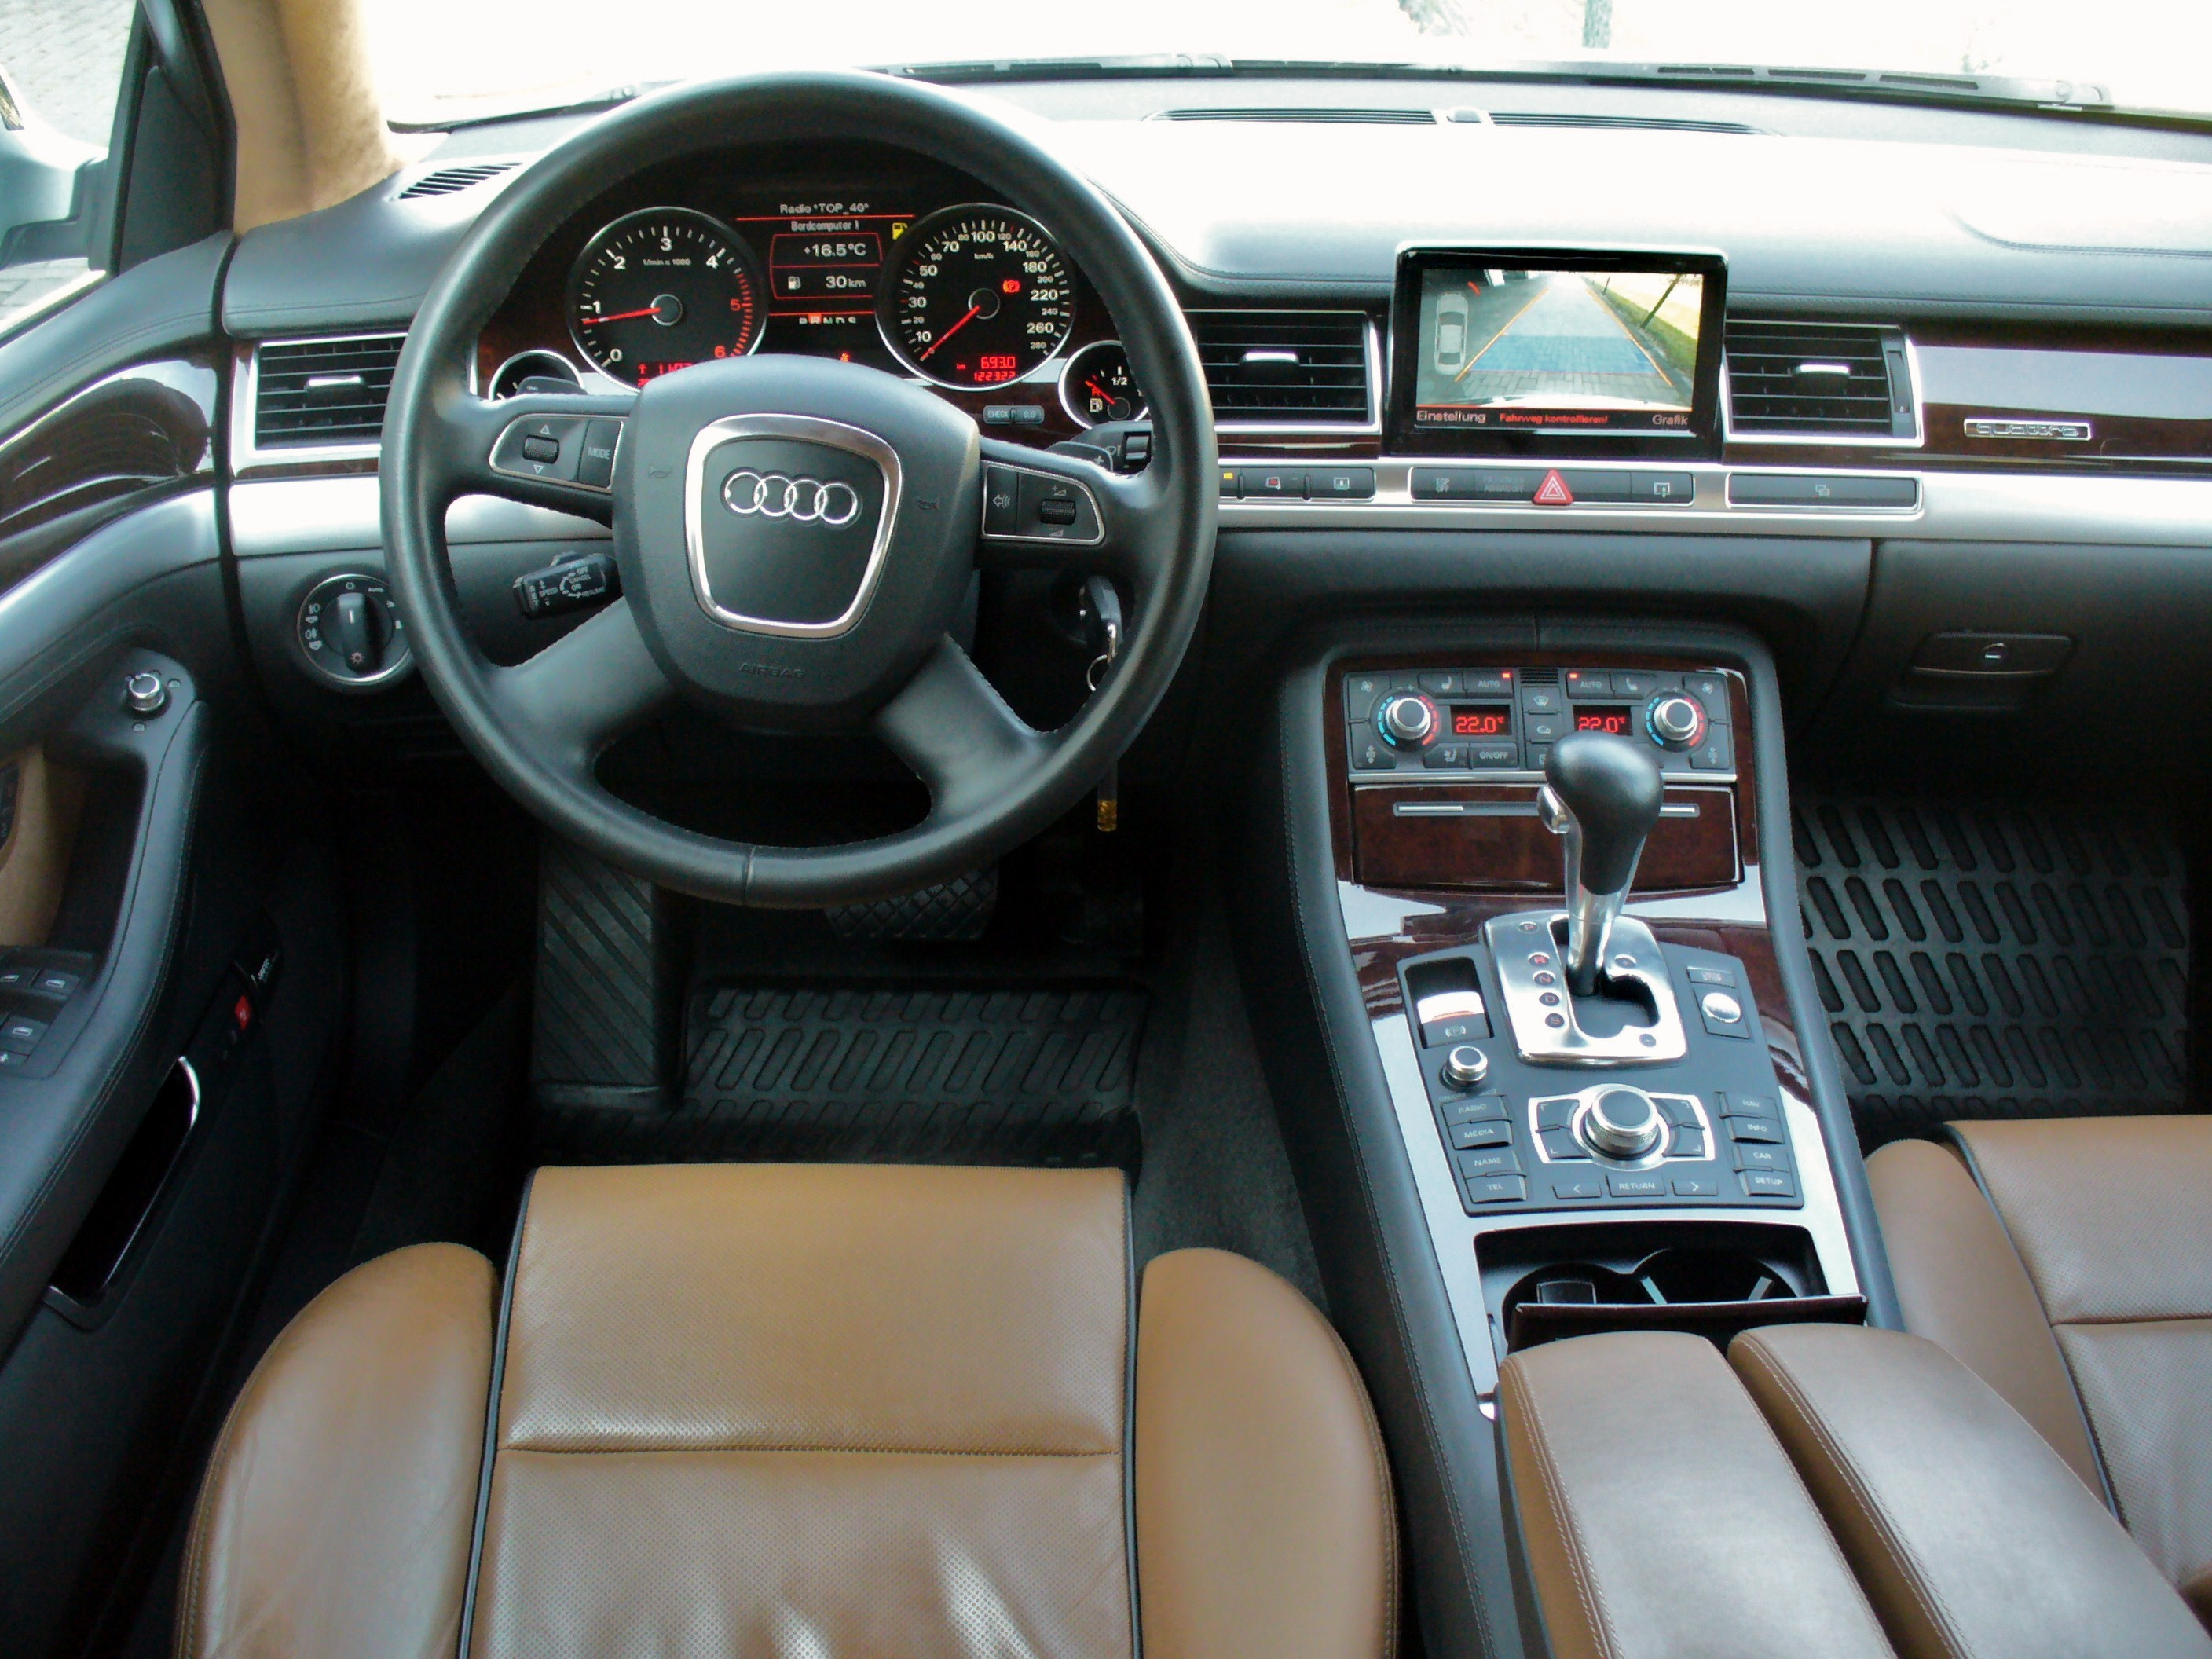 Audi A8 4 2 Tdi Technical Details History Photos On